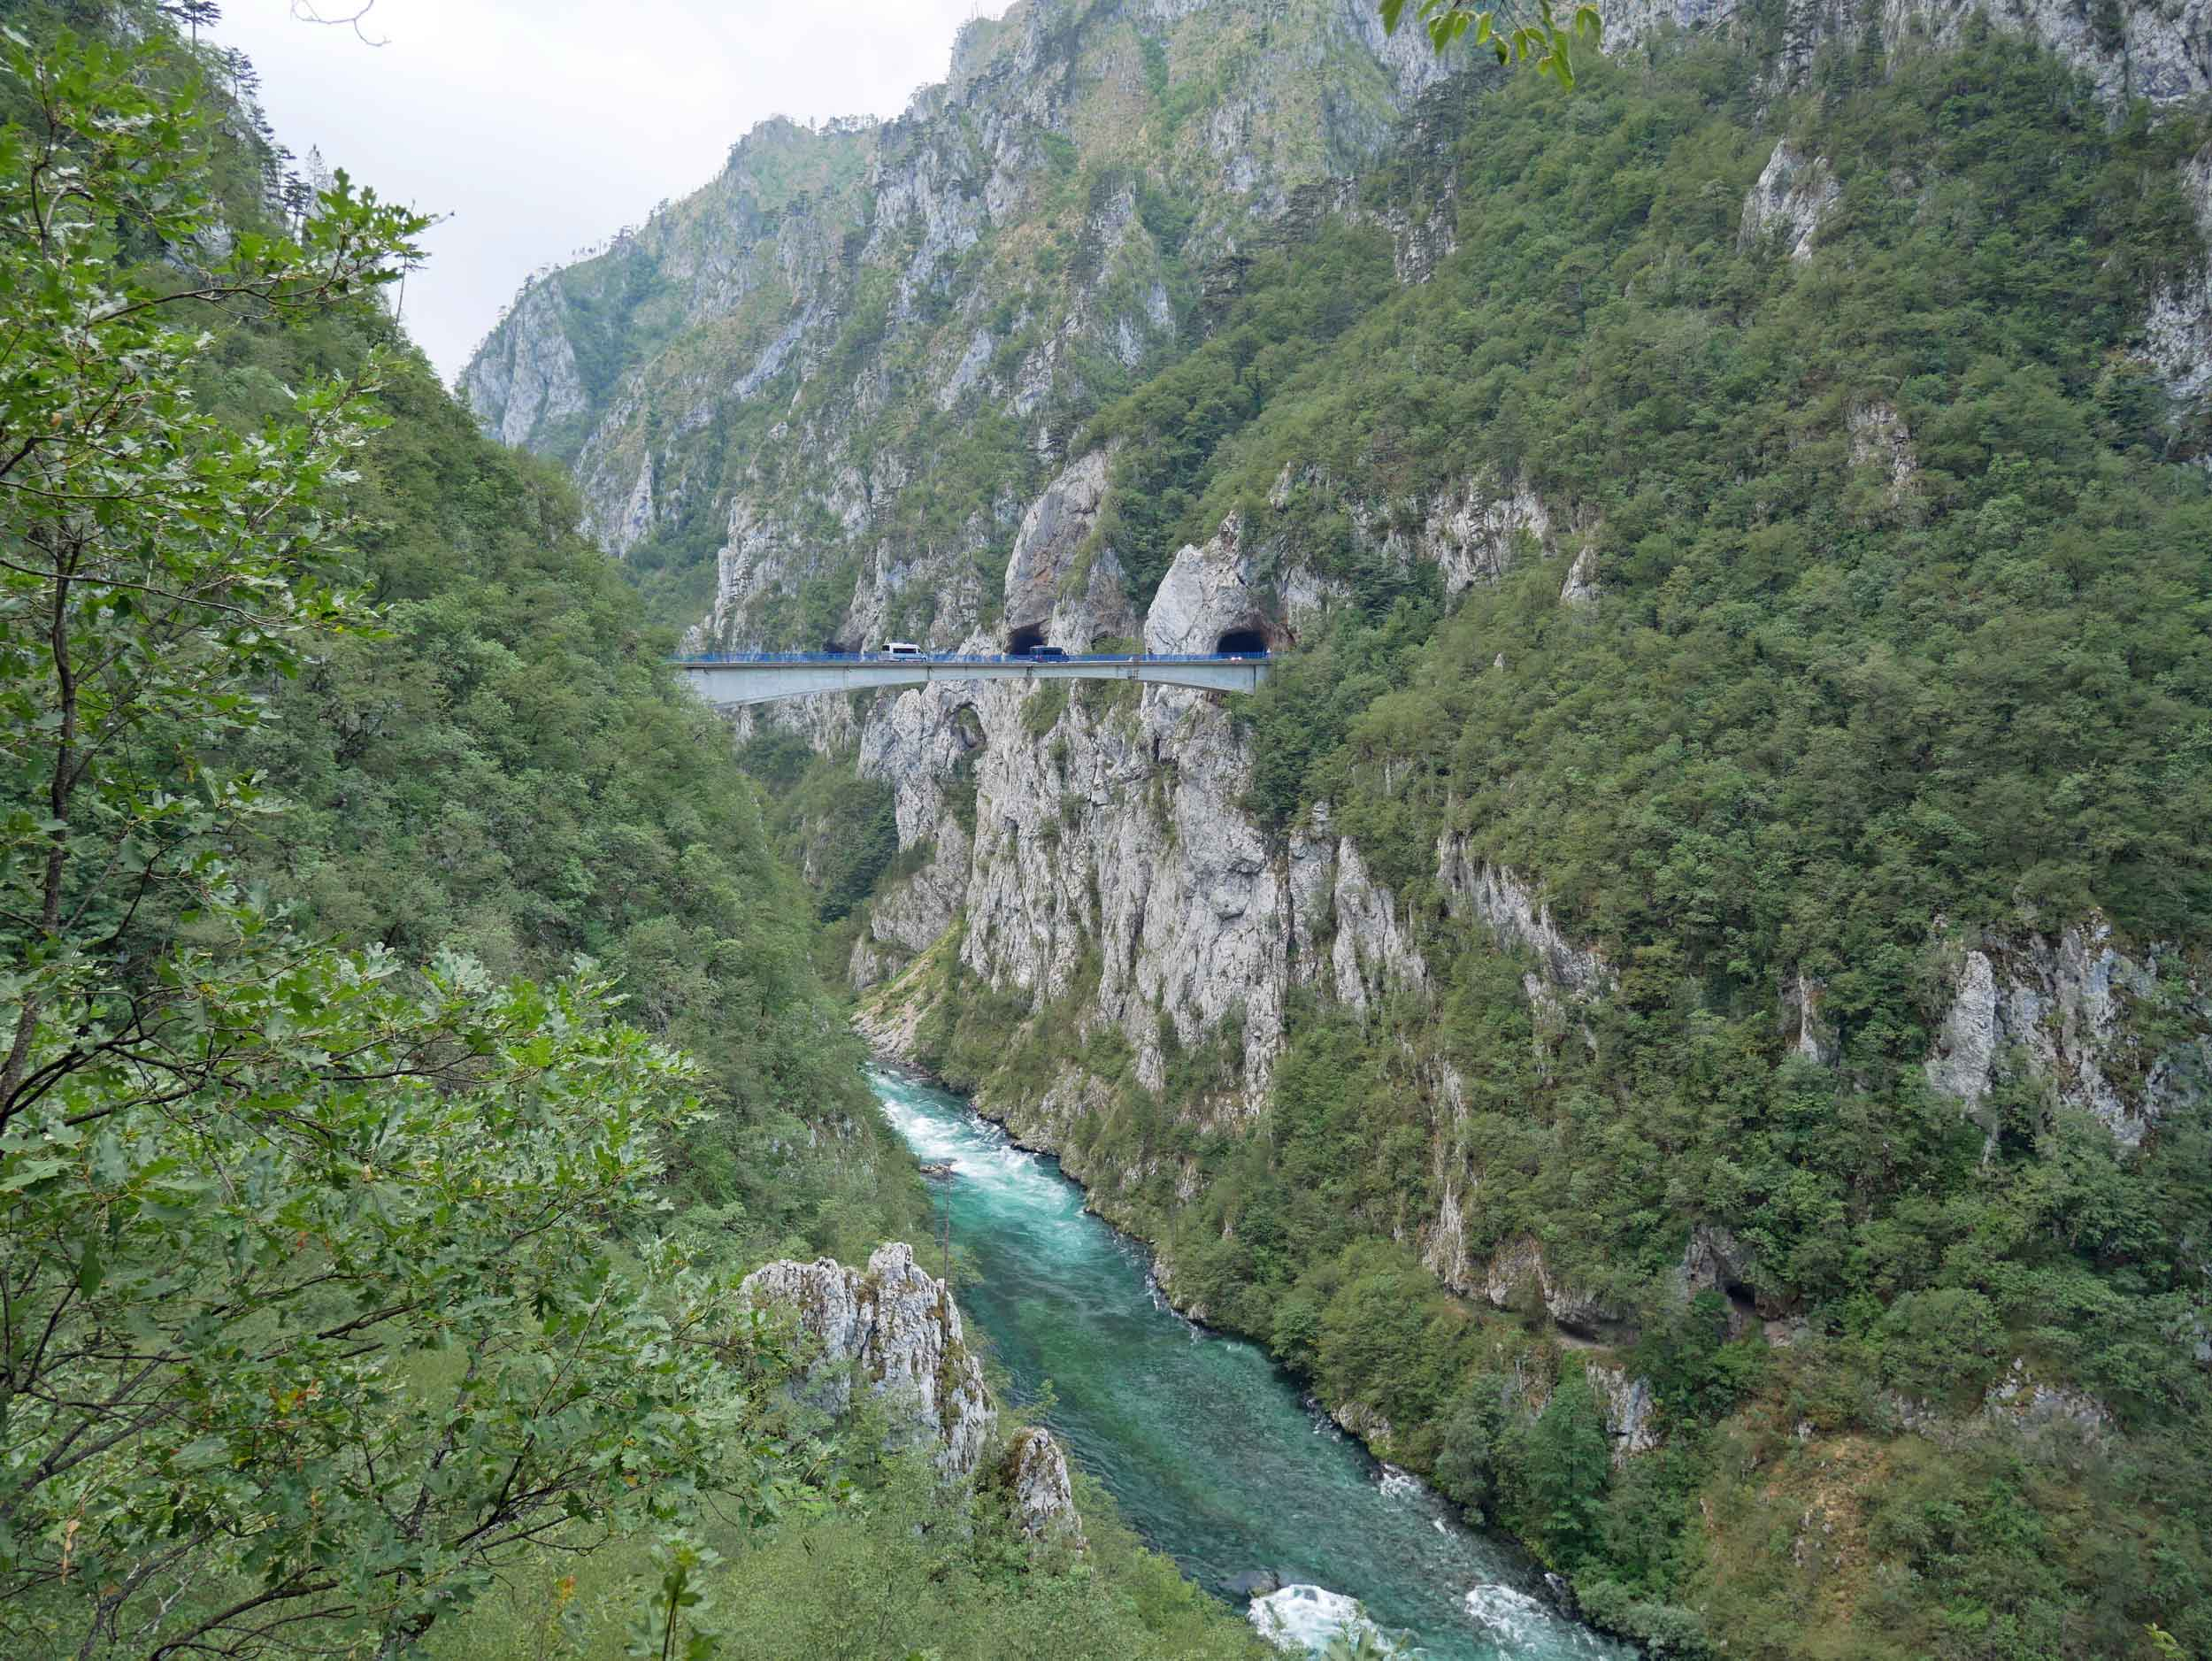 As we made our way to Plužine, the roads became more narrow and un-guarded, hanging on to the cliffs high above the Piva River below.